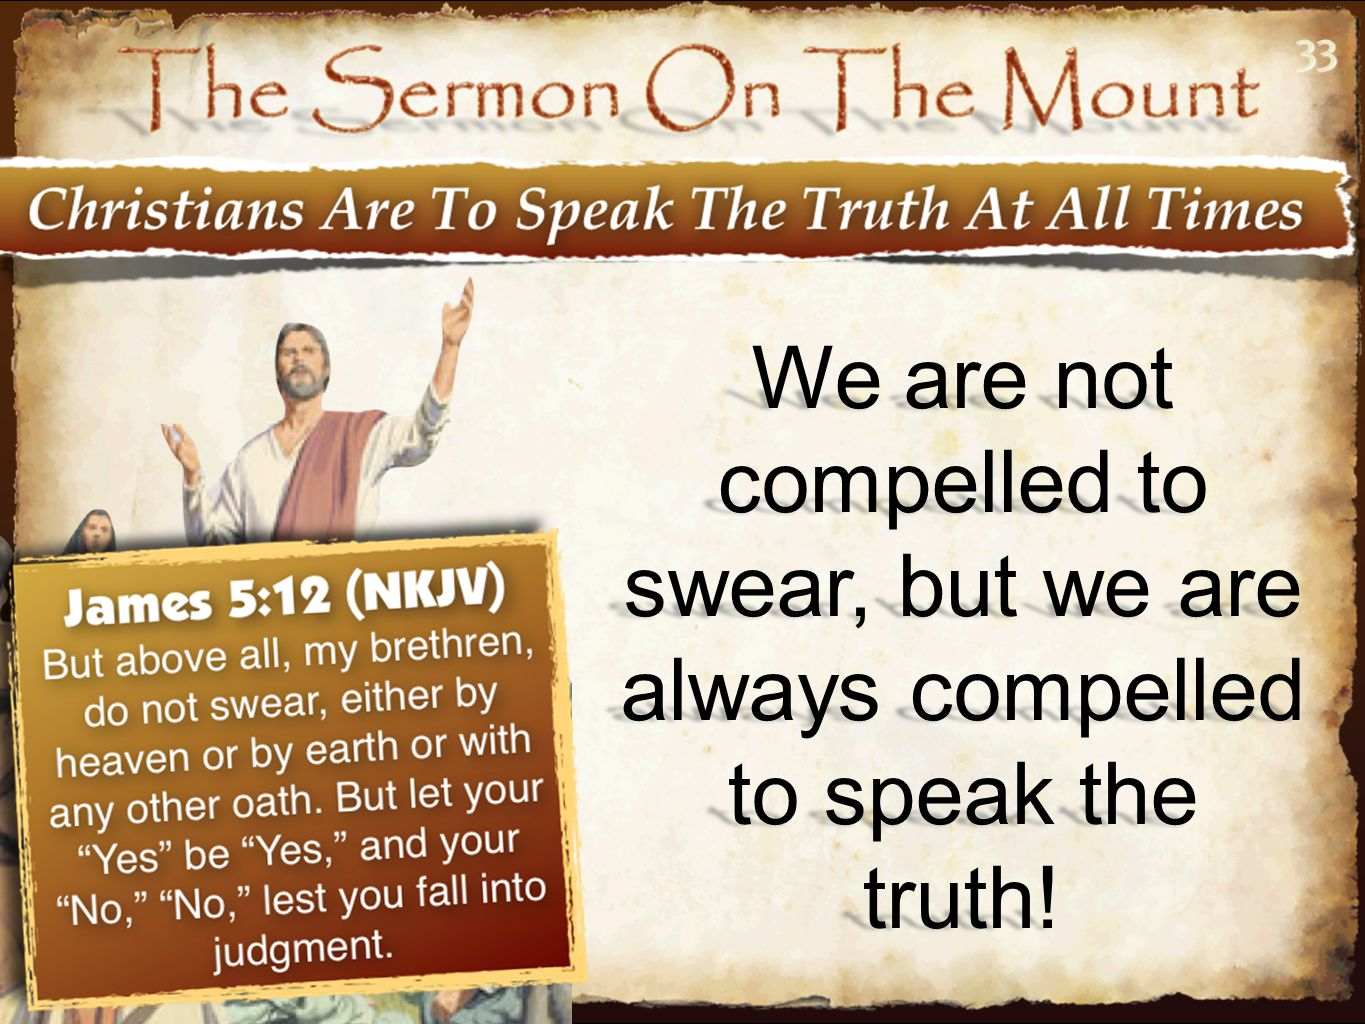 33 We are not compelled to swear, but we are always compelled to speak the truth!